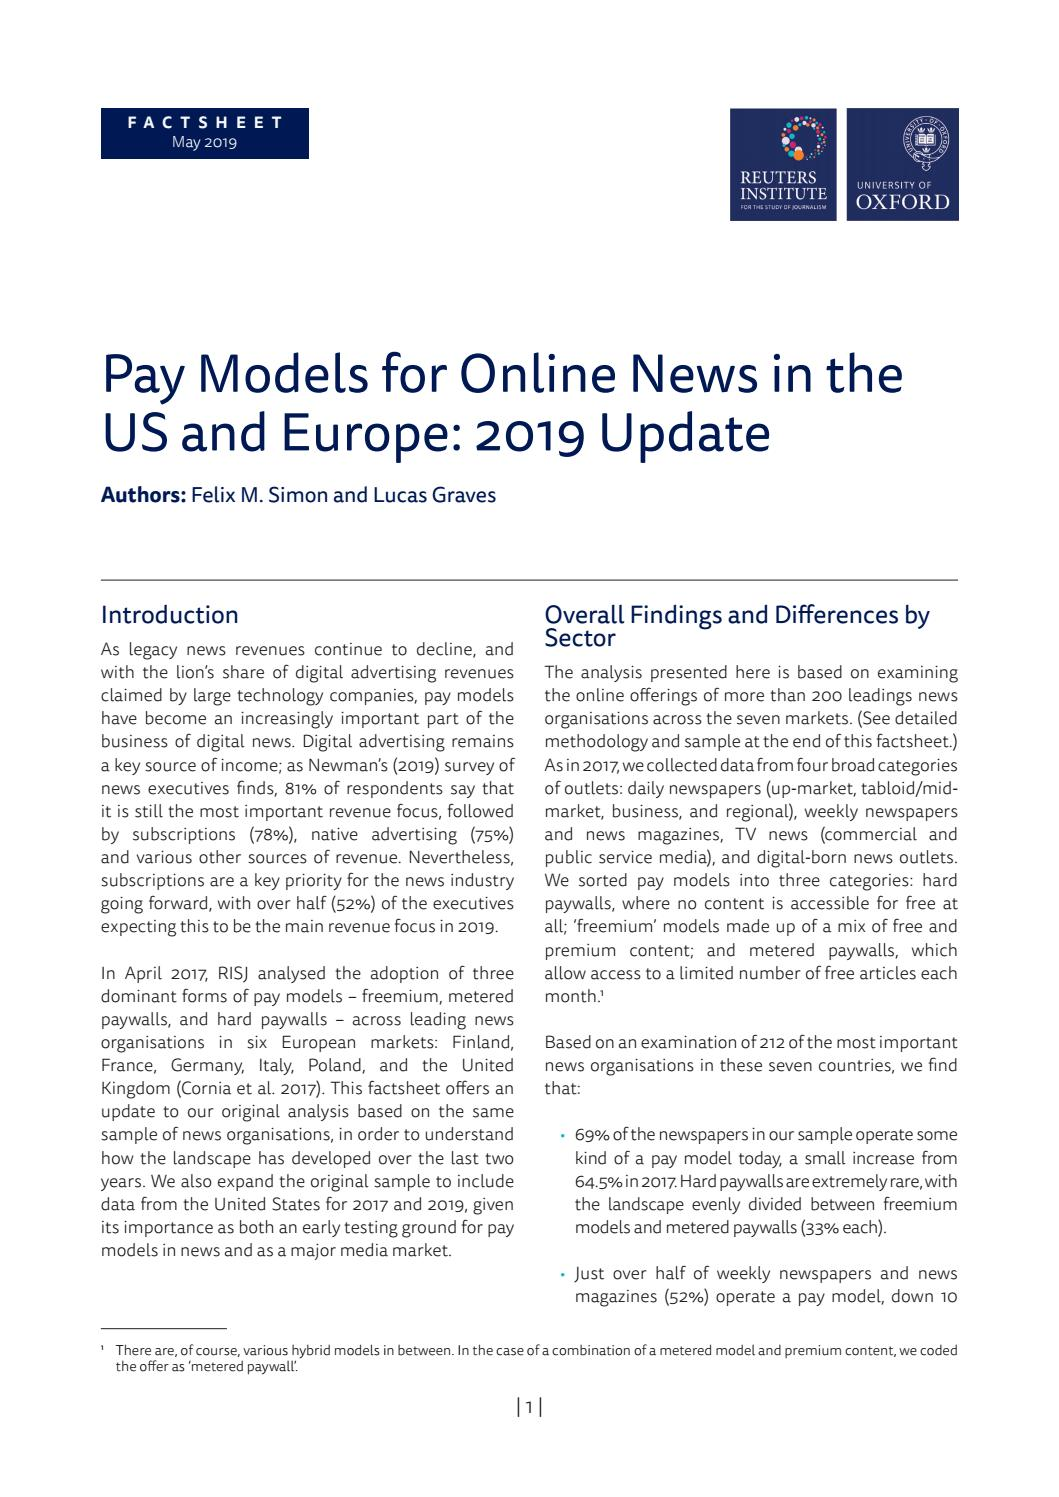 Pay Models for Online News in the US and Europe: 2019 Update